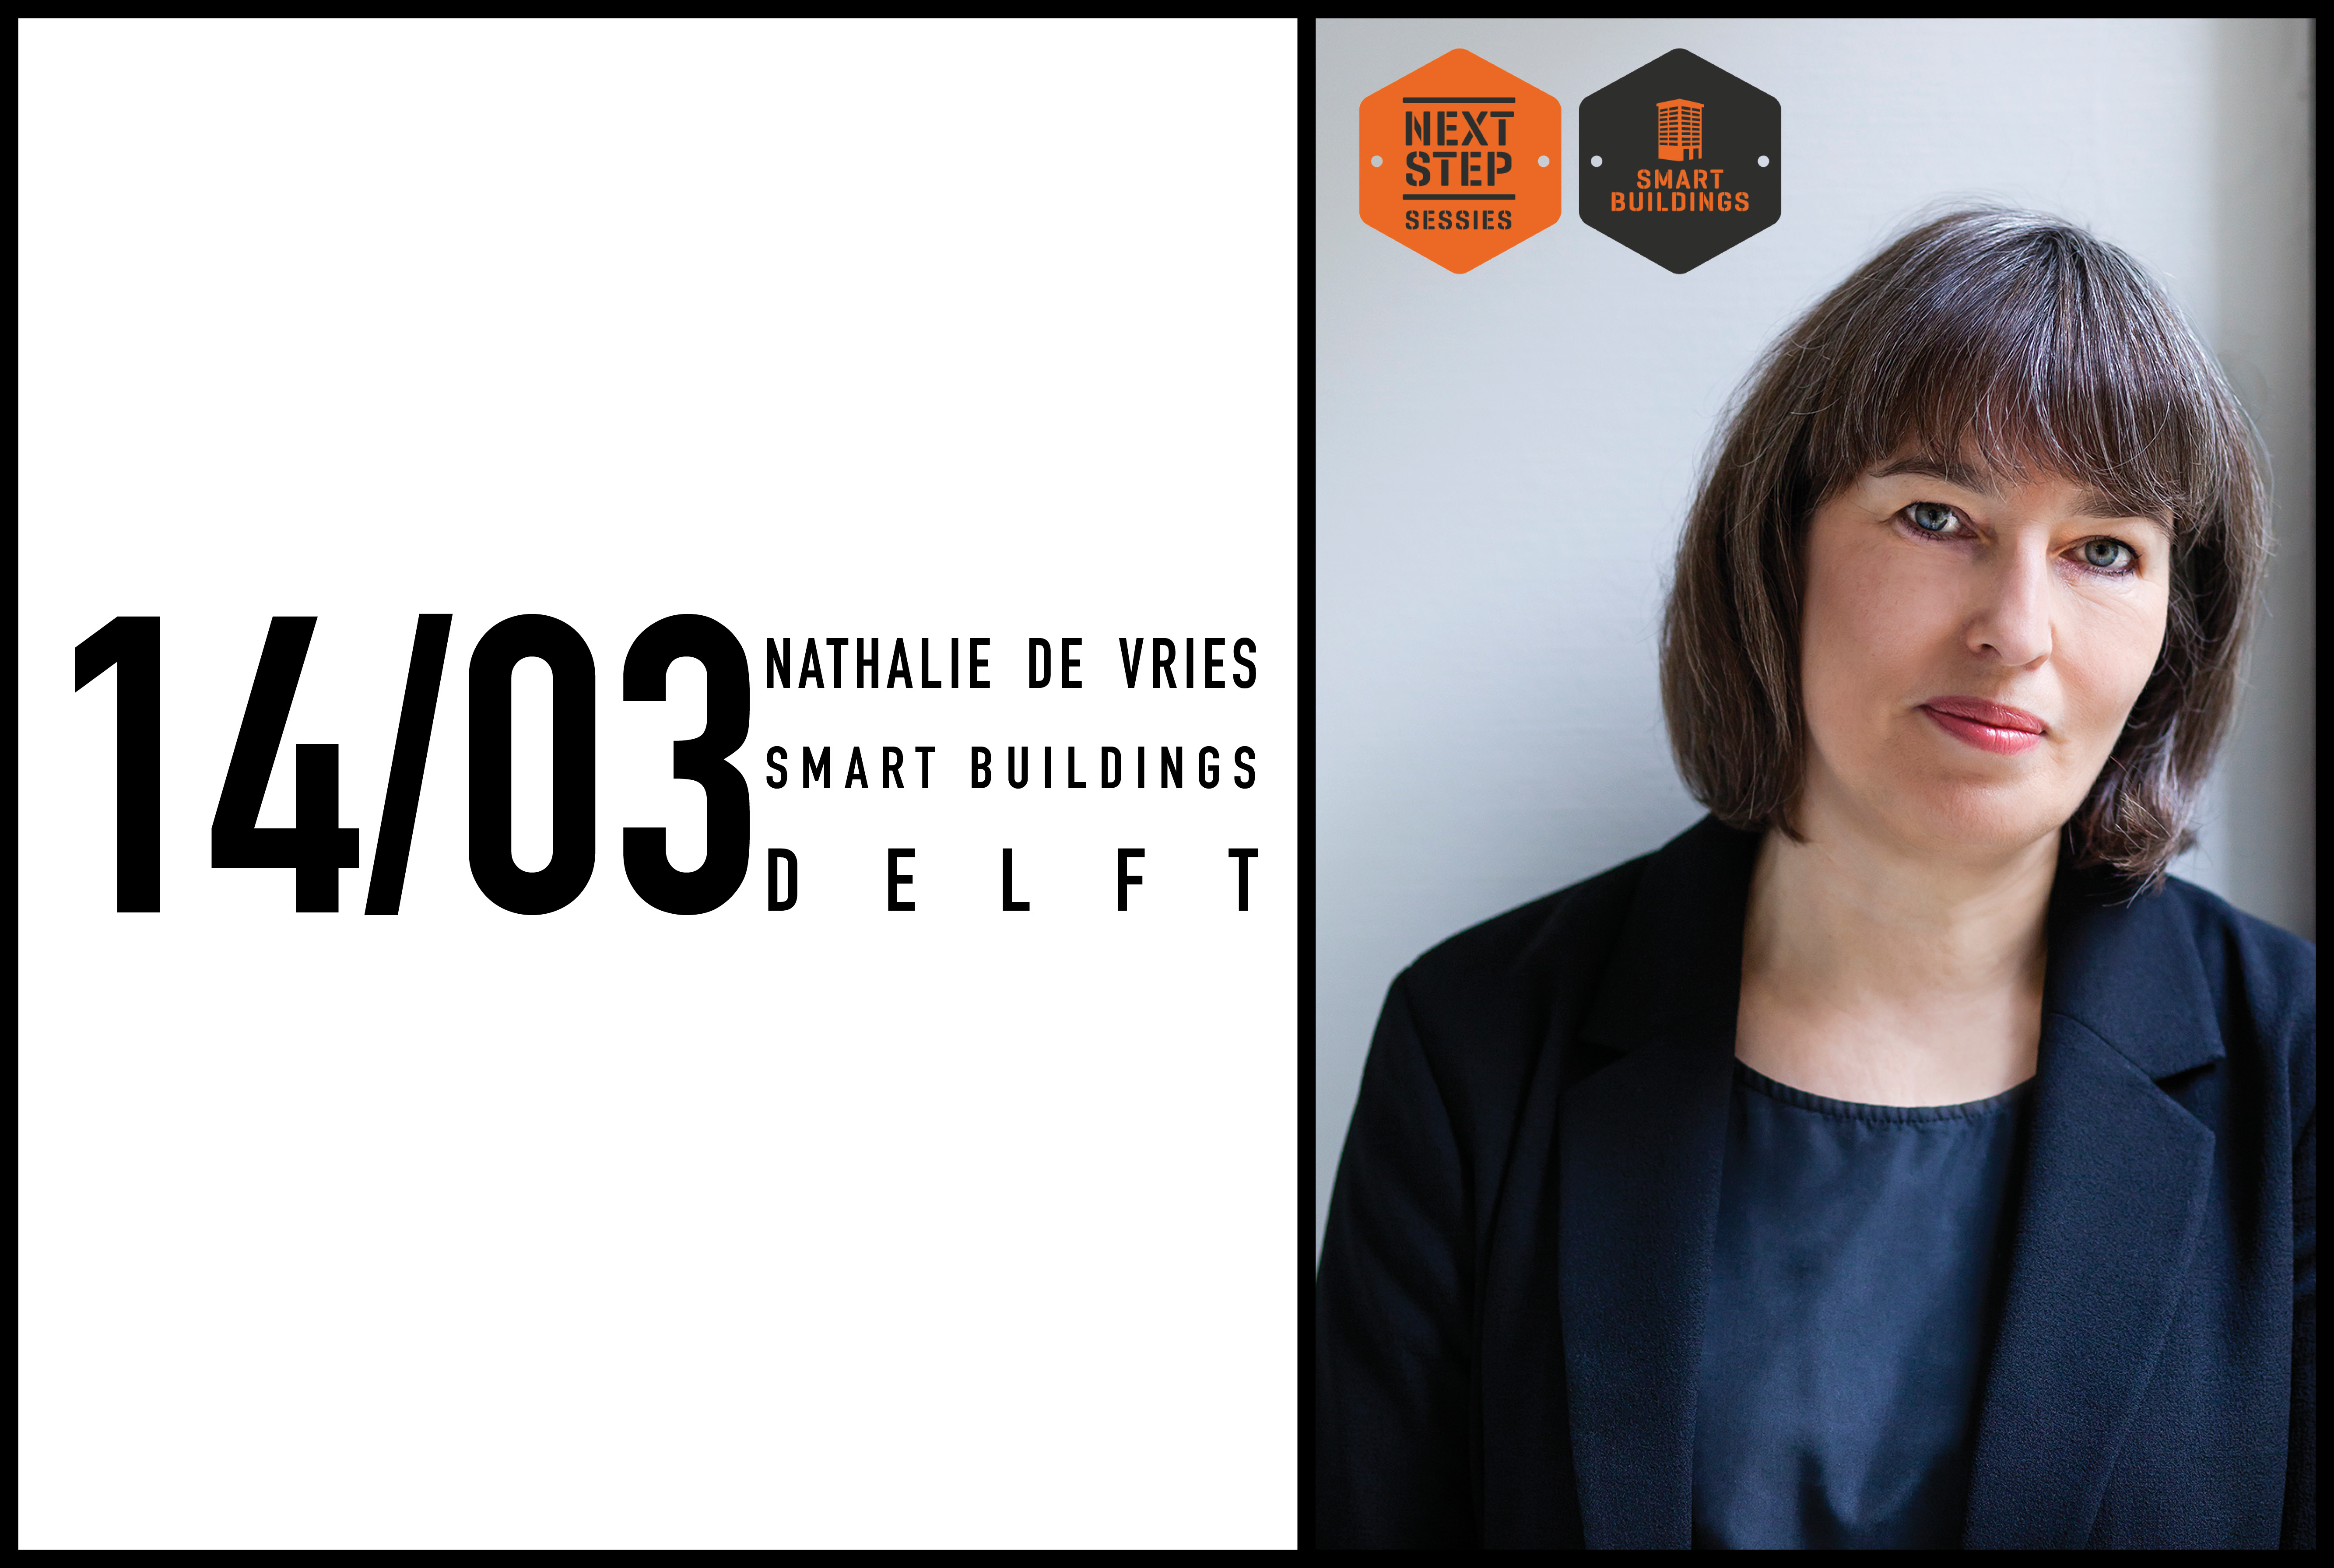 Nathalie de Vries speaking at Next Step Sessions Congress, 14th of March 2018 in Delft, The Netherlands